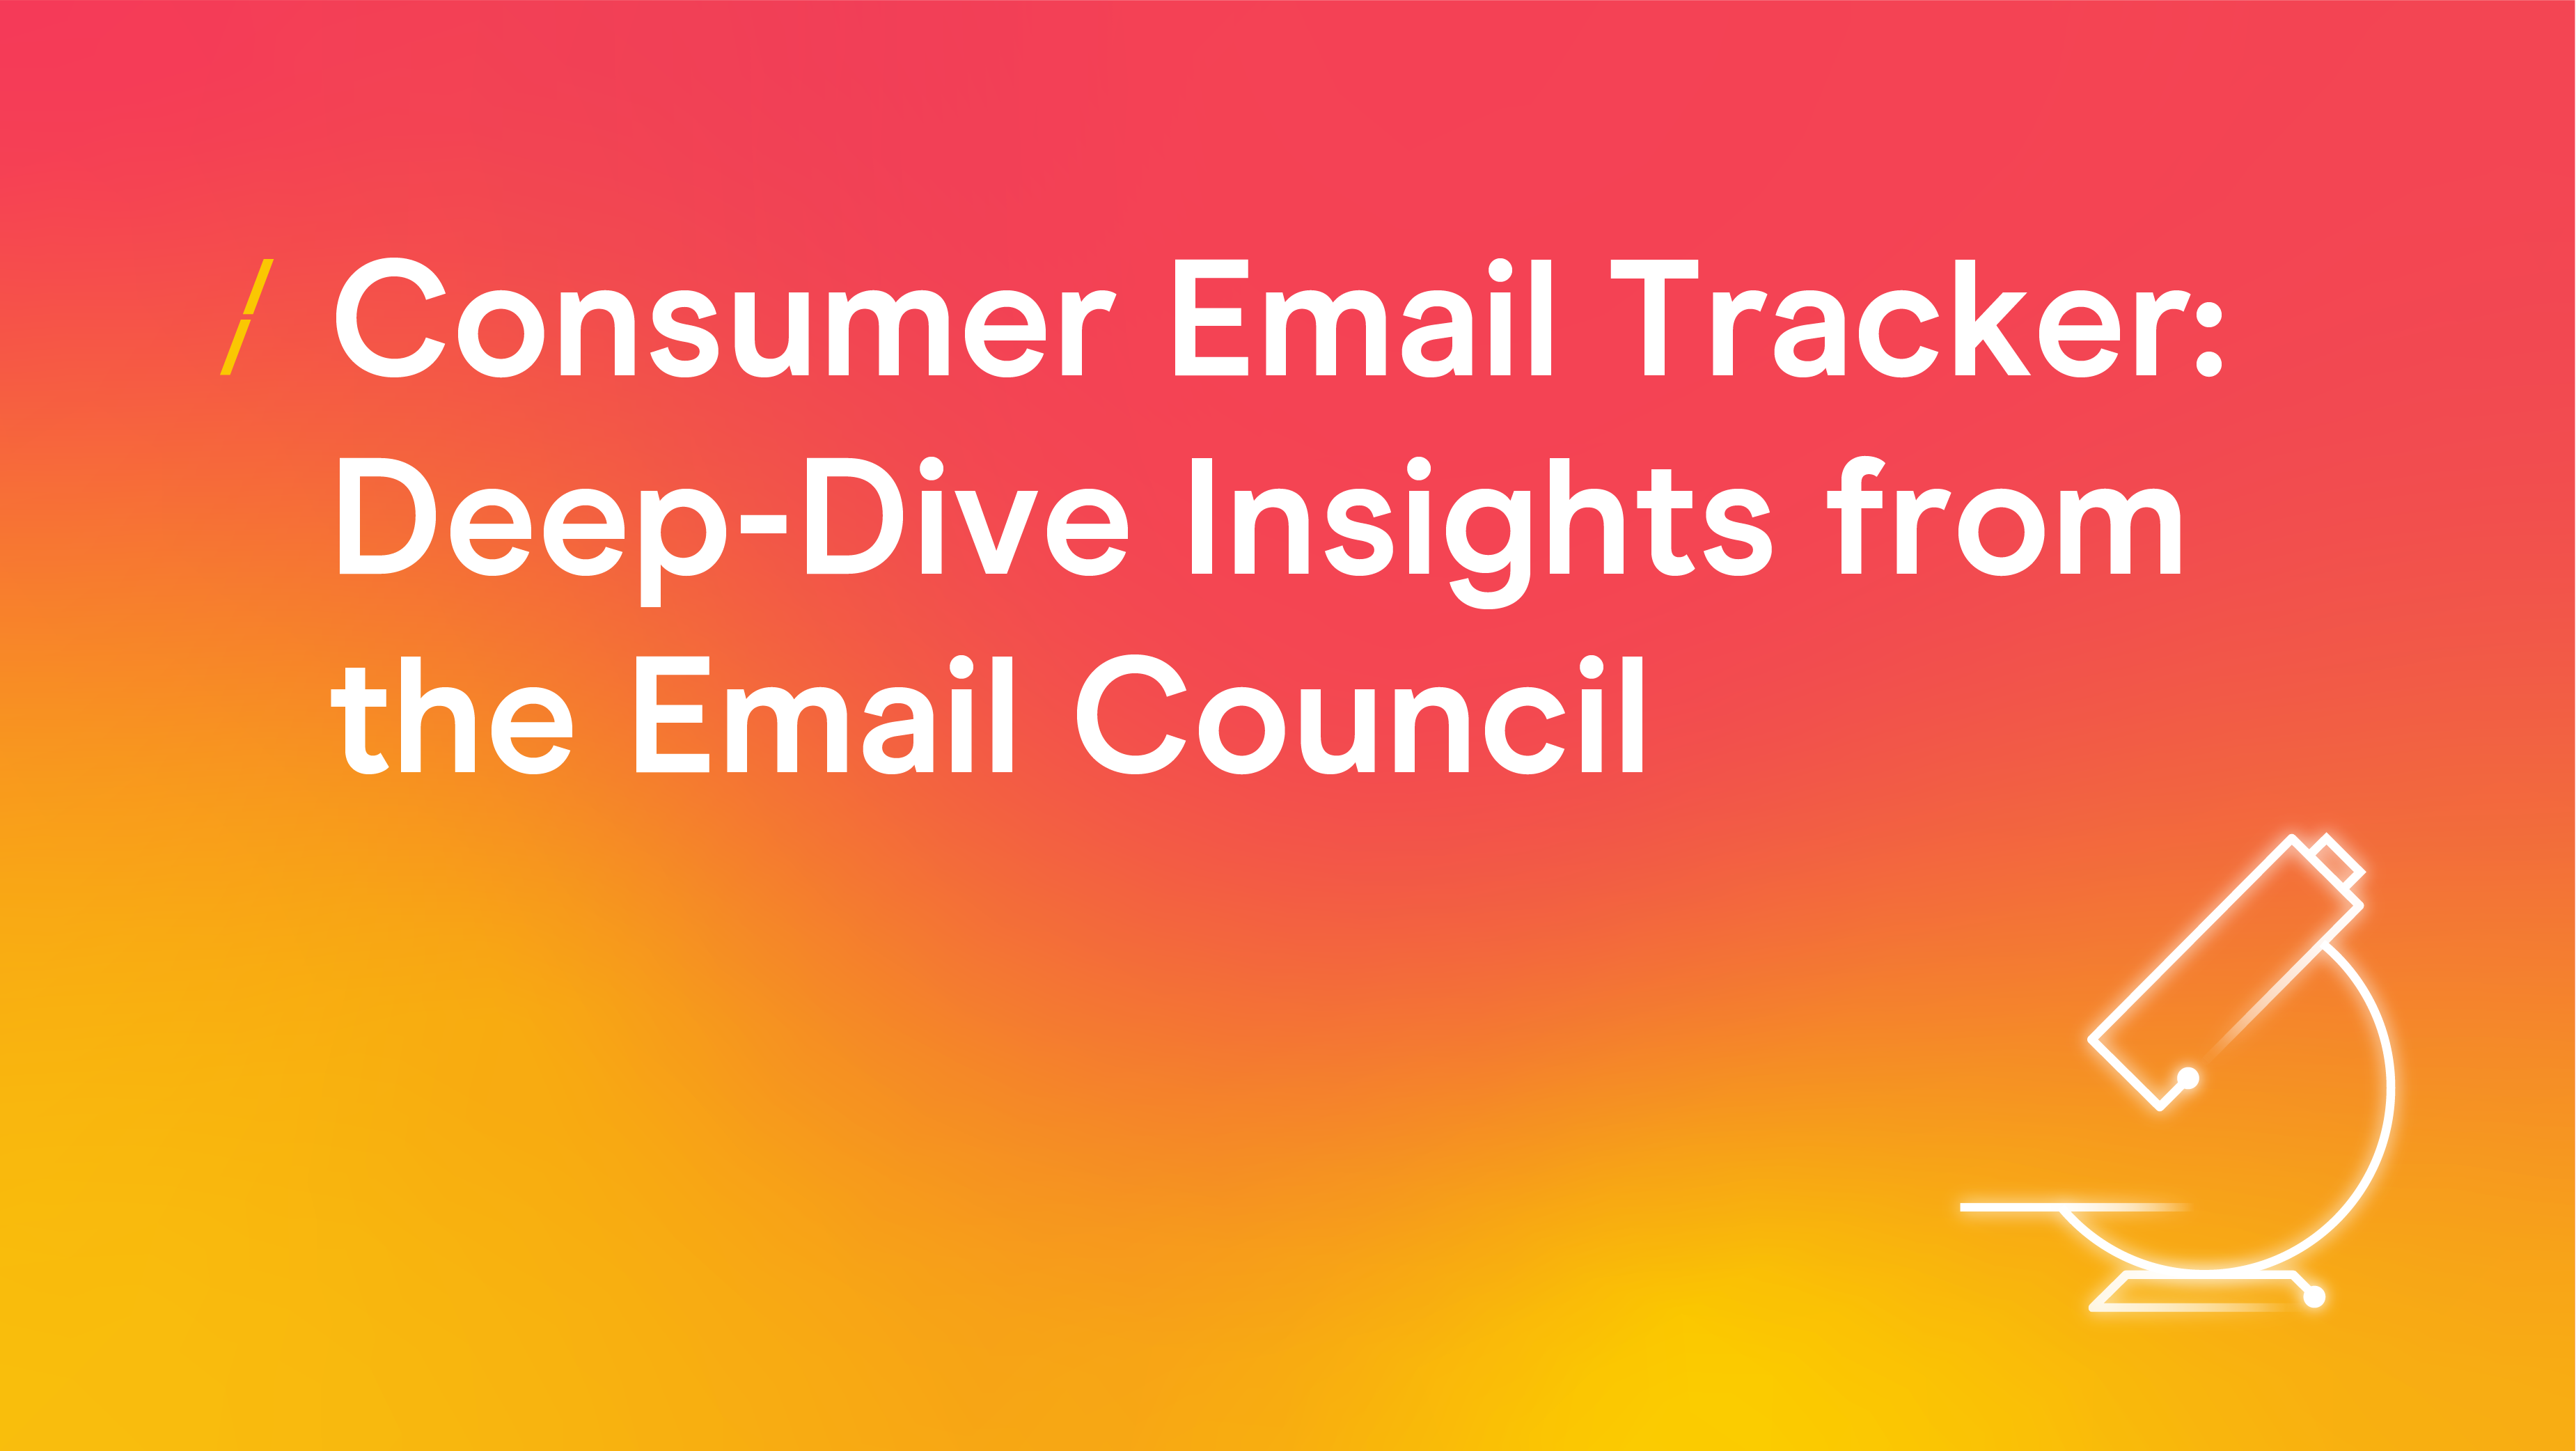 Consumer Email Tracker- Deep-Dive Insights from the Email Council_Research articles copy (002).png